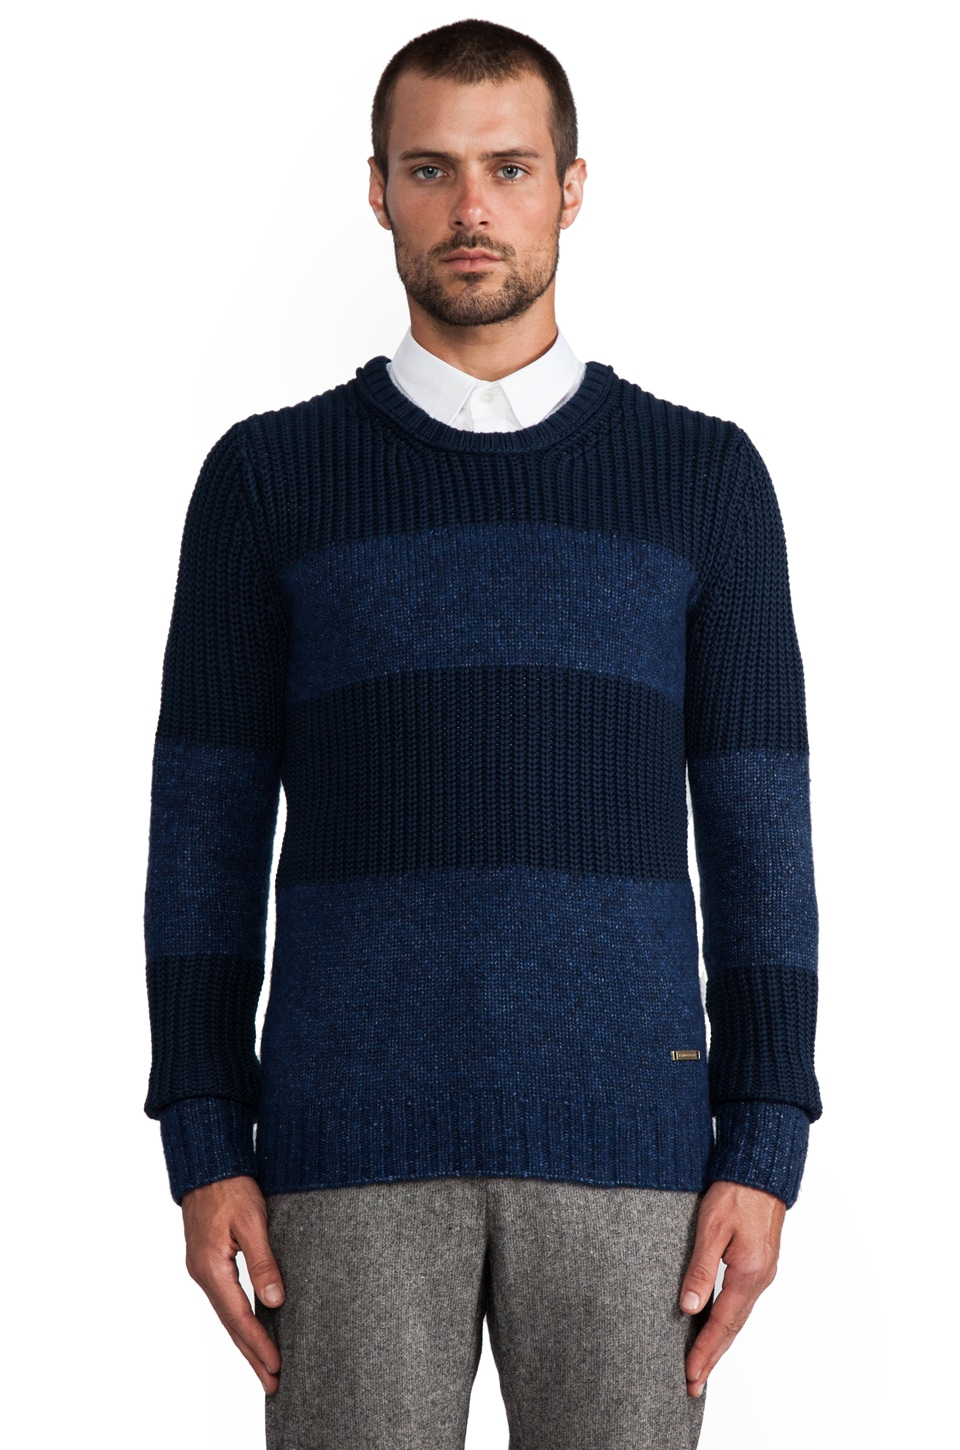 J. Lindeberg Cable Stripe Sweater in Indigo Blue